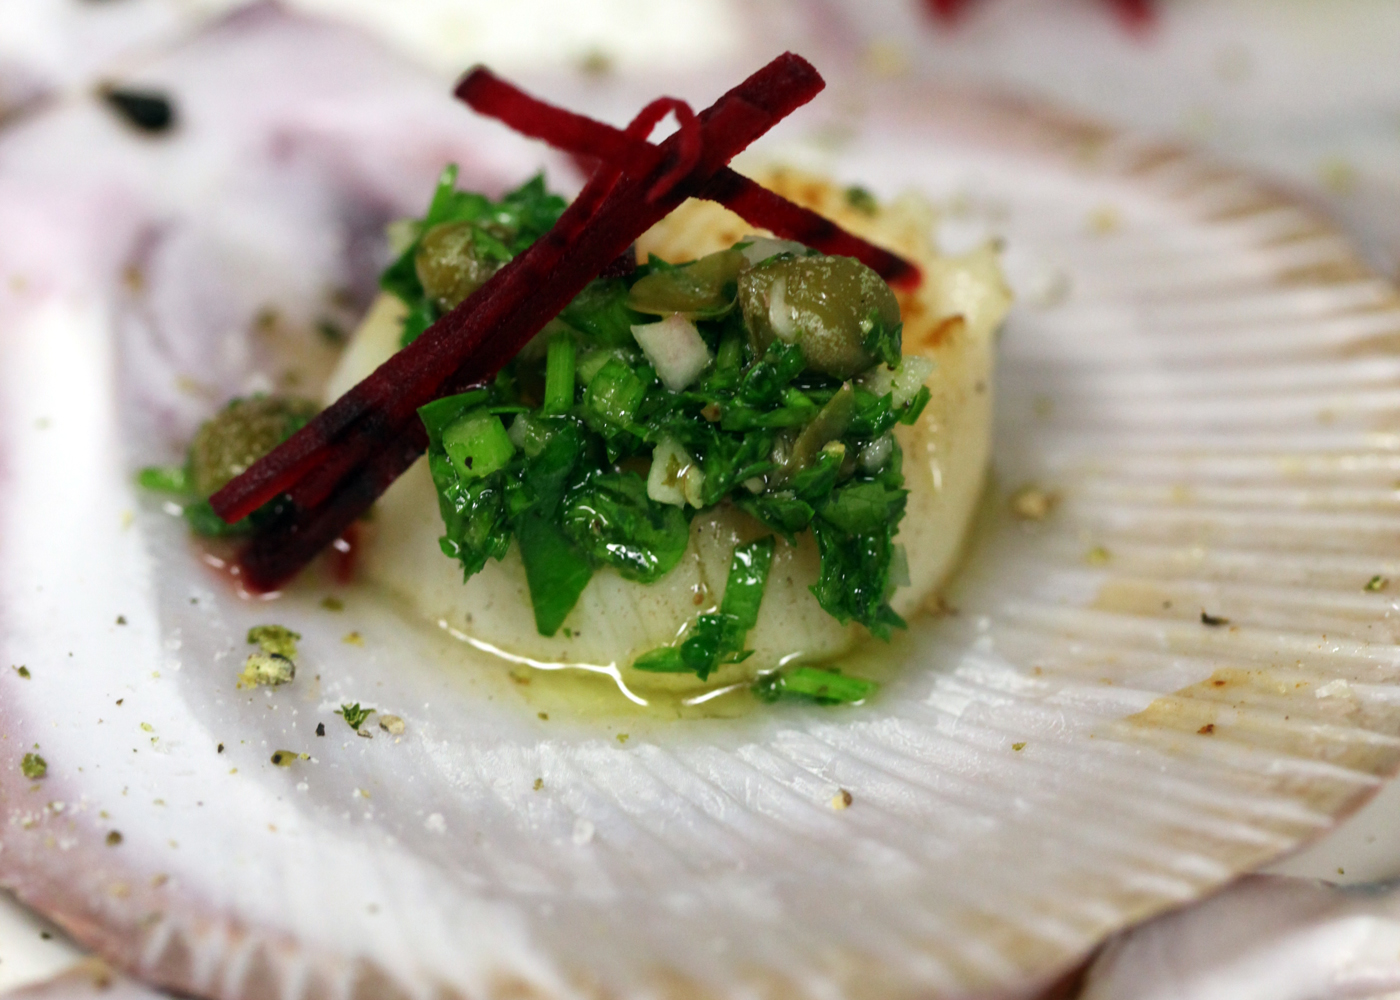 Seared scallops with salsa verde and beetroot | FOODWISE